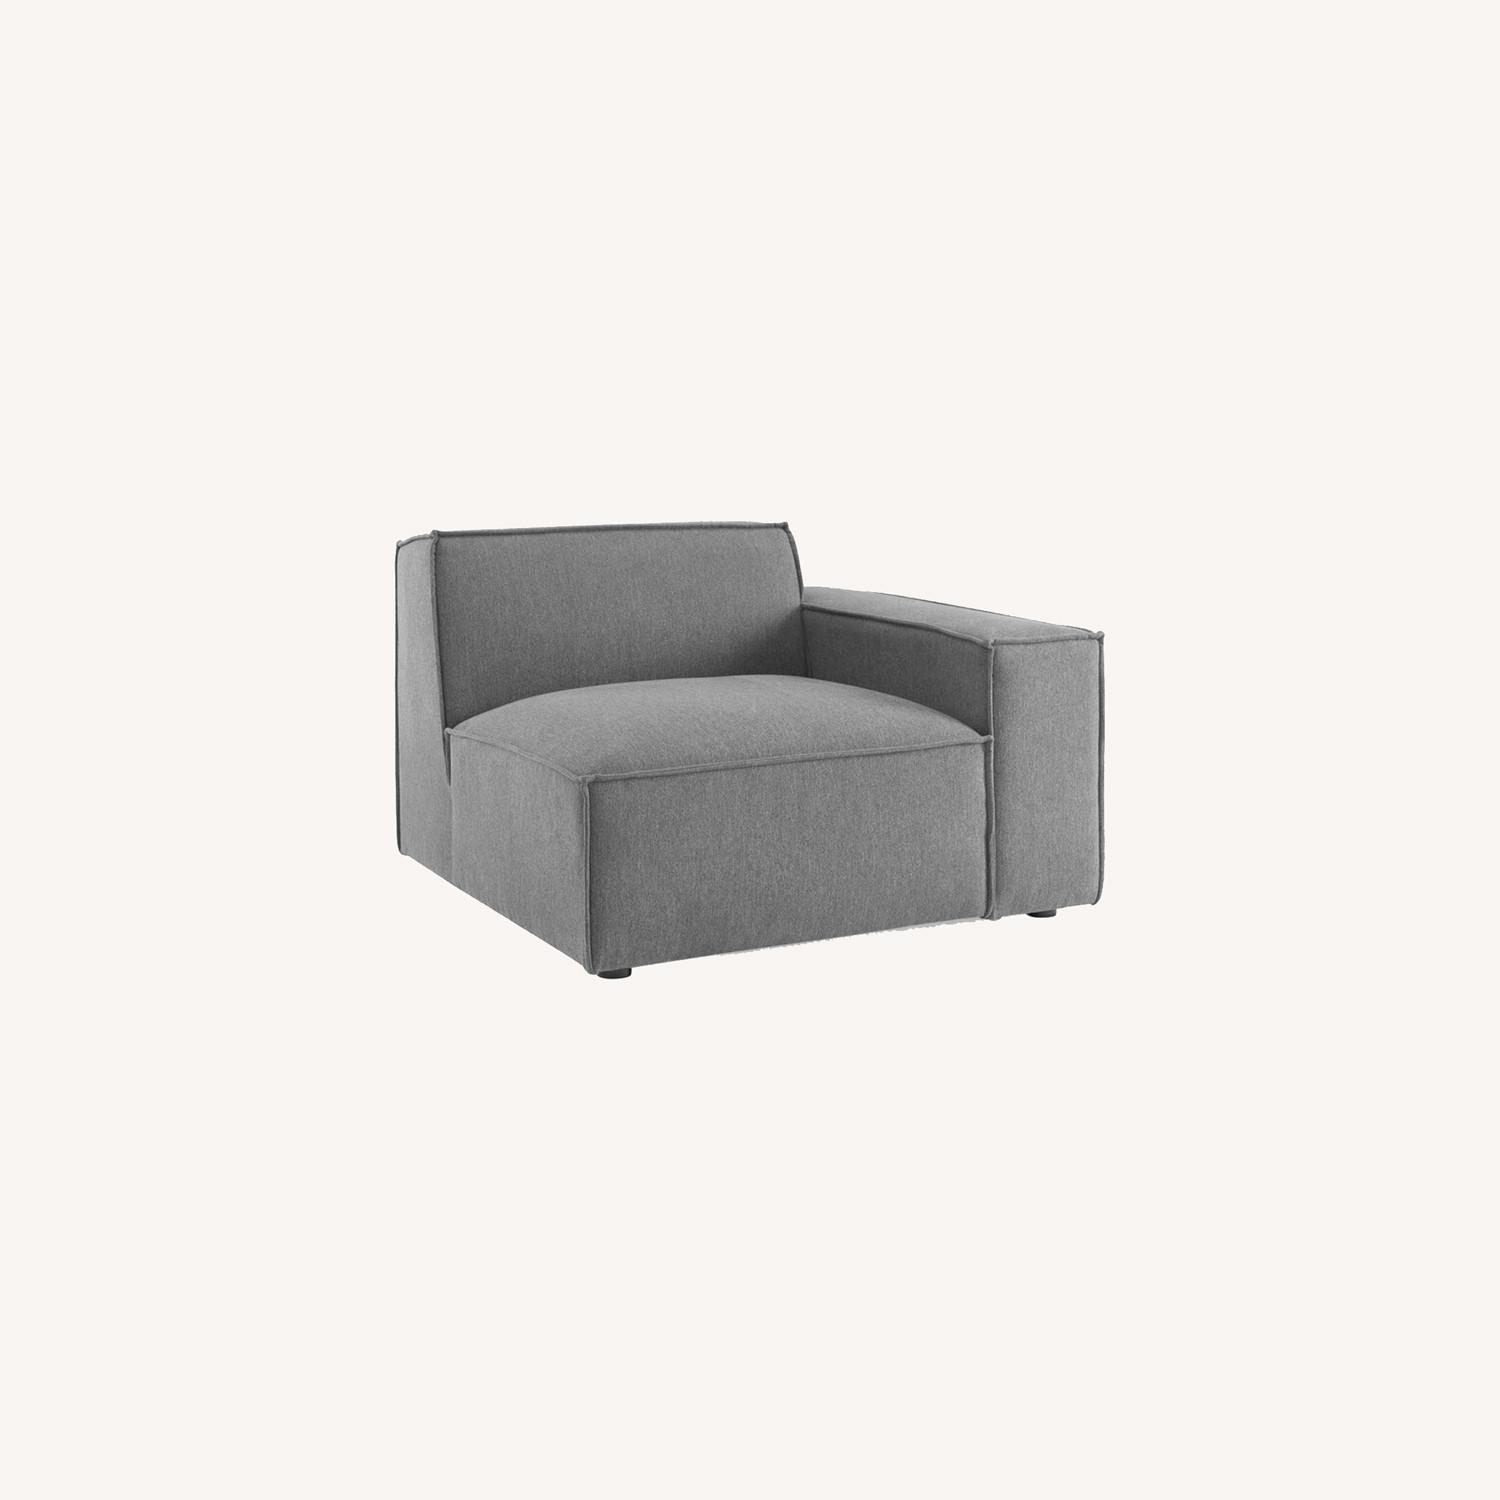 8-Piece Sectional Sofa In Charcoal Fabric Finish - image-10